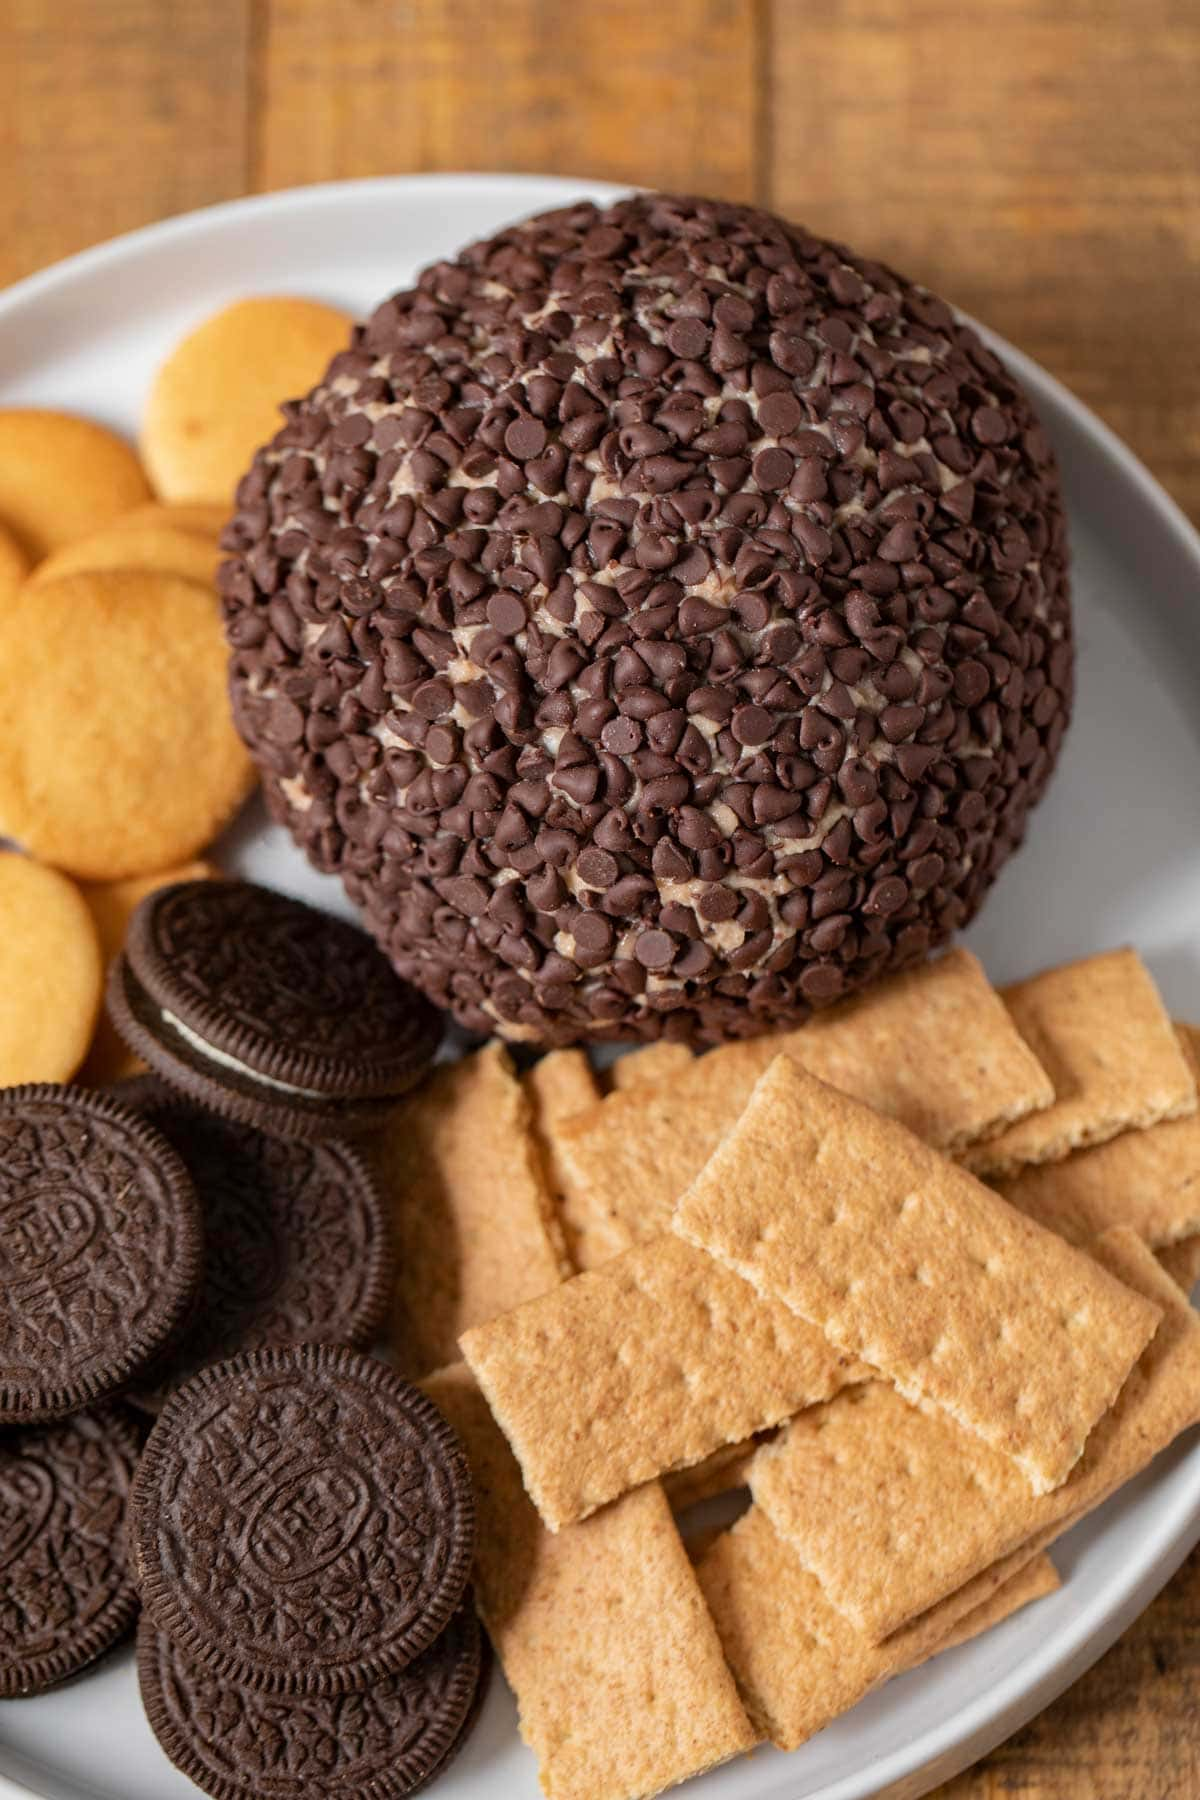 Cookie Dough Cheese Ball on plate with assorted cookies